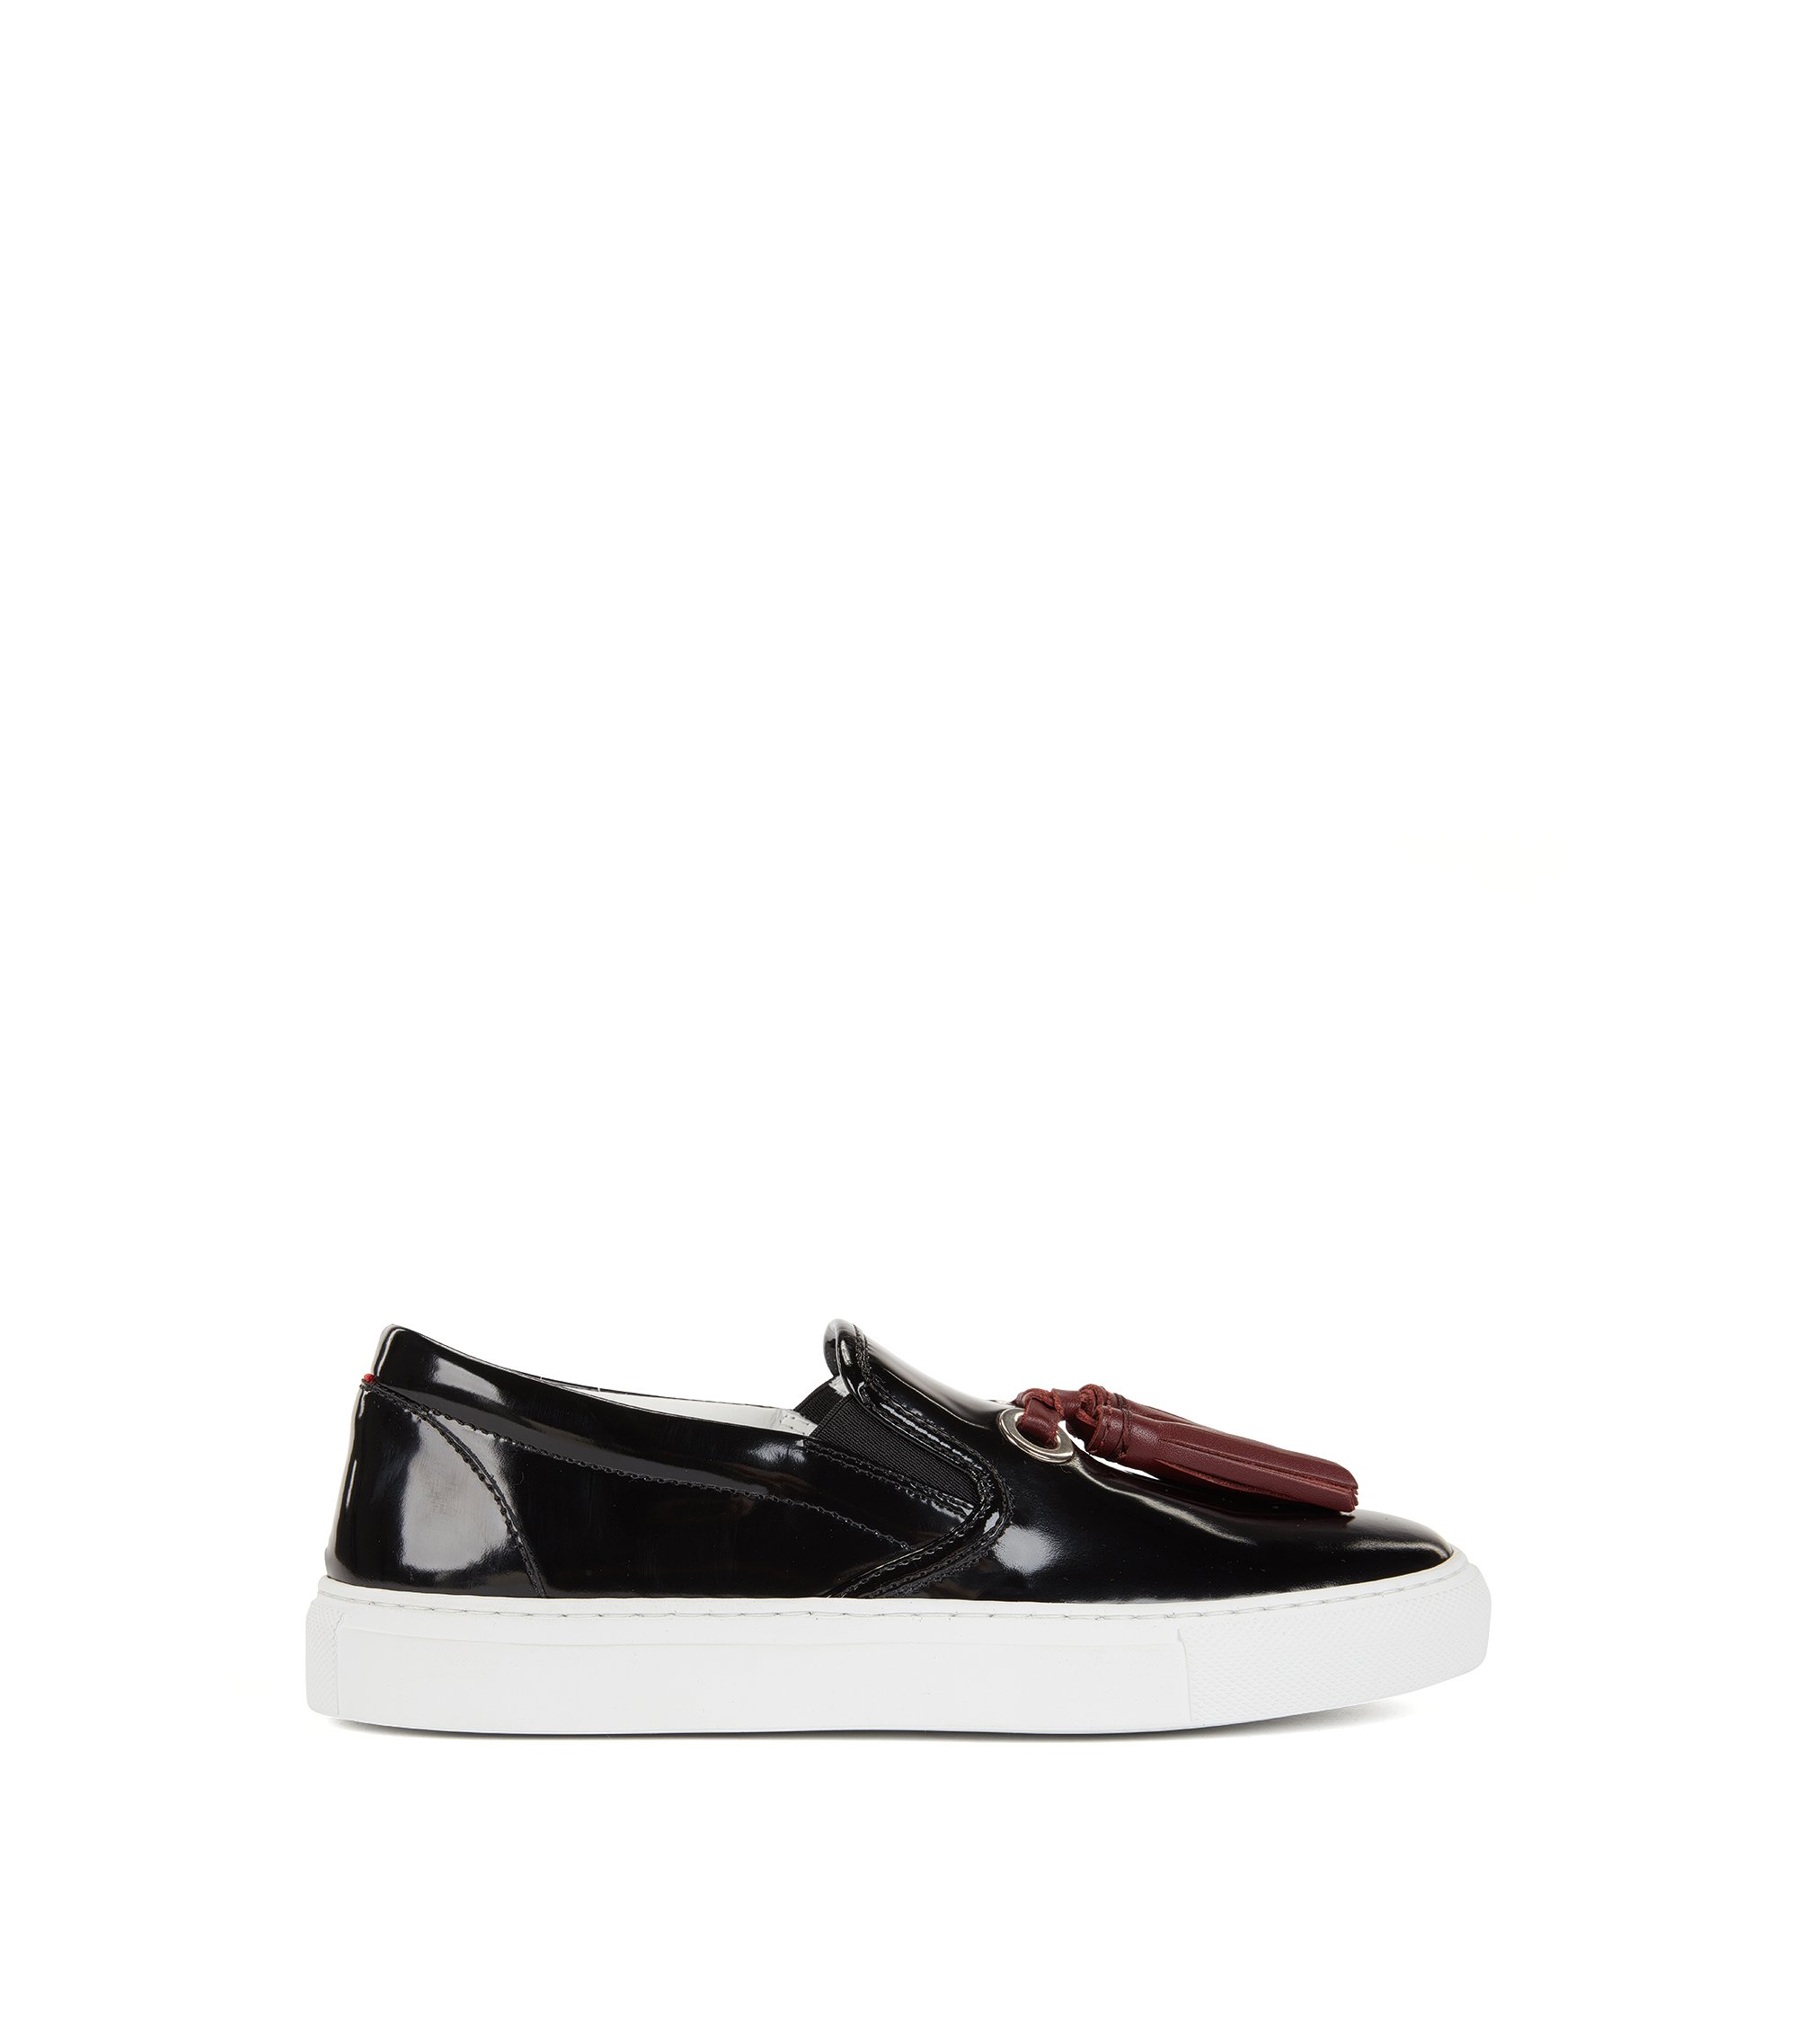 Tasselled loafers in Italian leather, Black